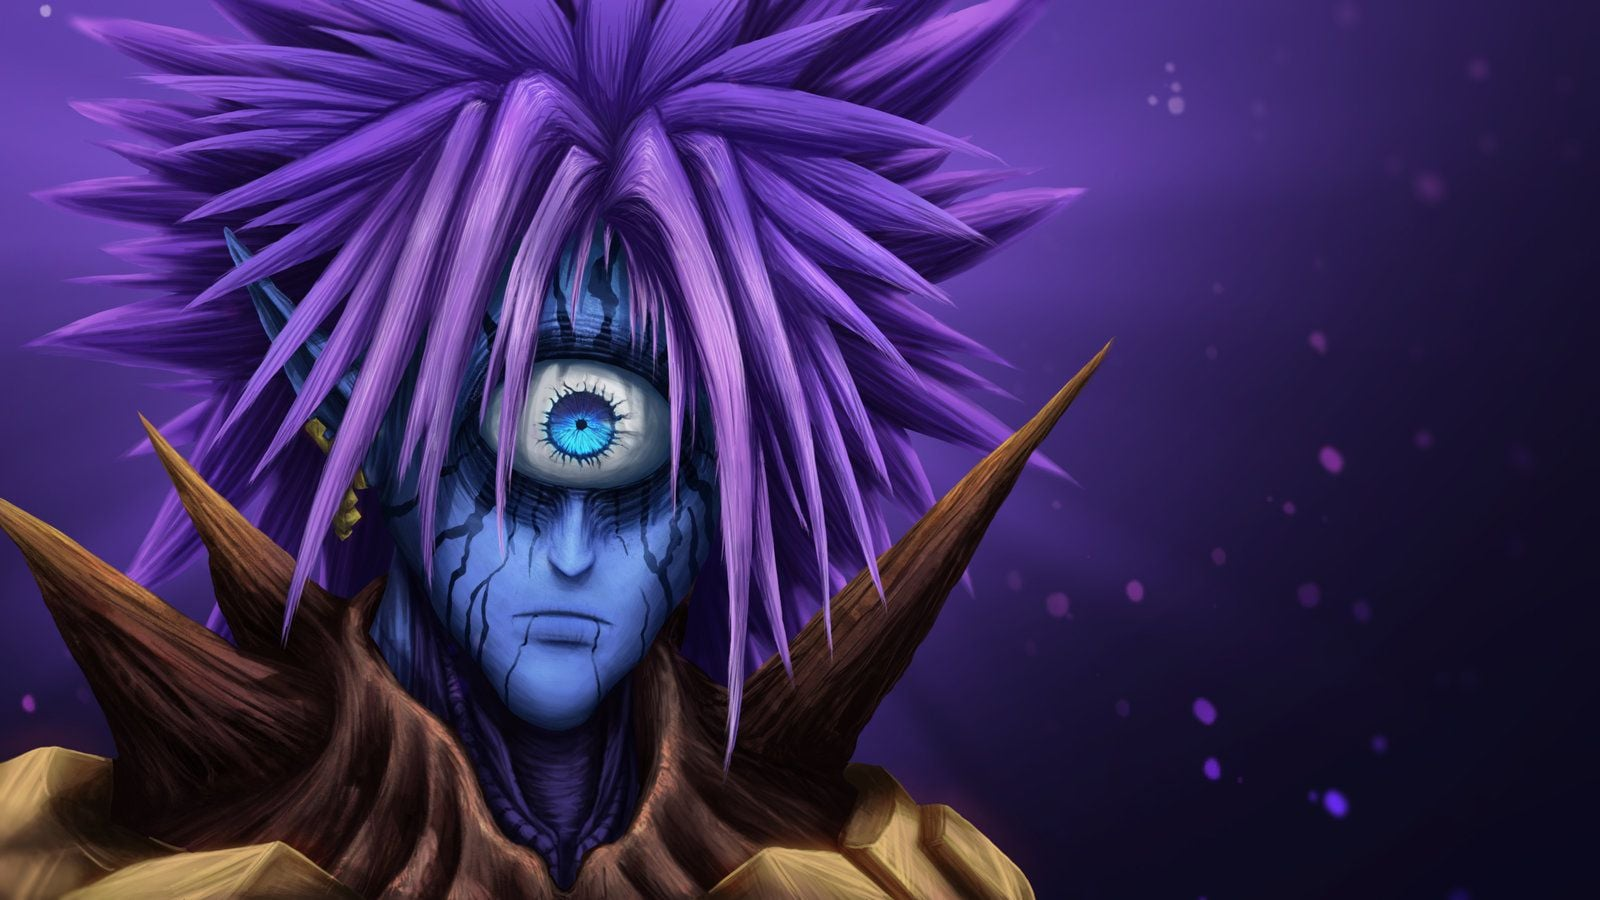 E Punch Man Lord Boros Hd 1080p Wallpaper E Punch Man